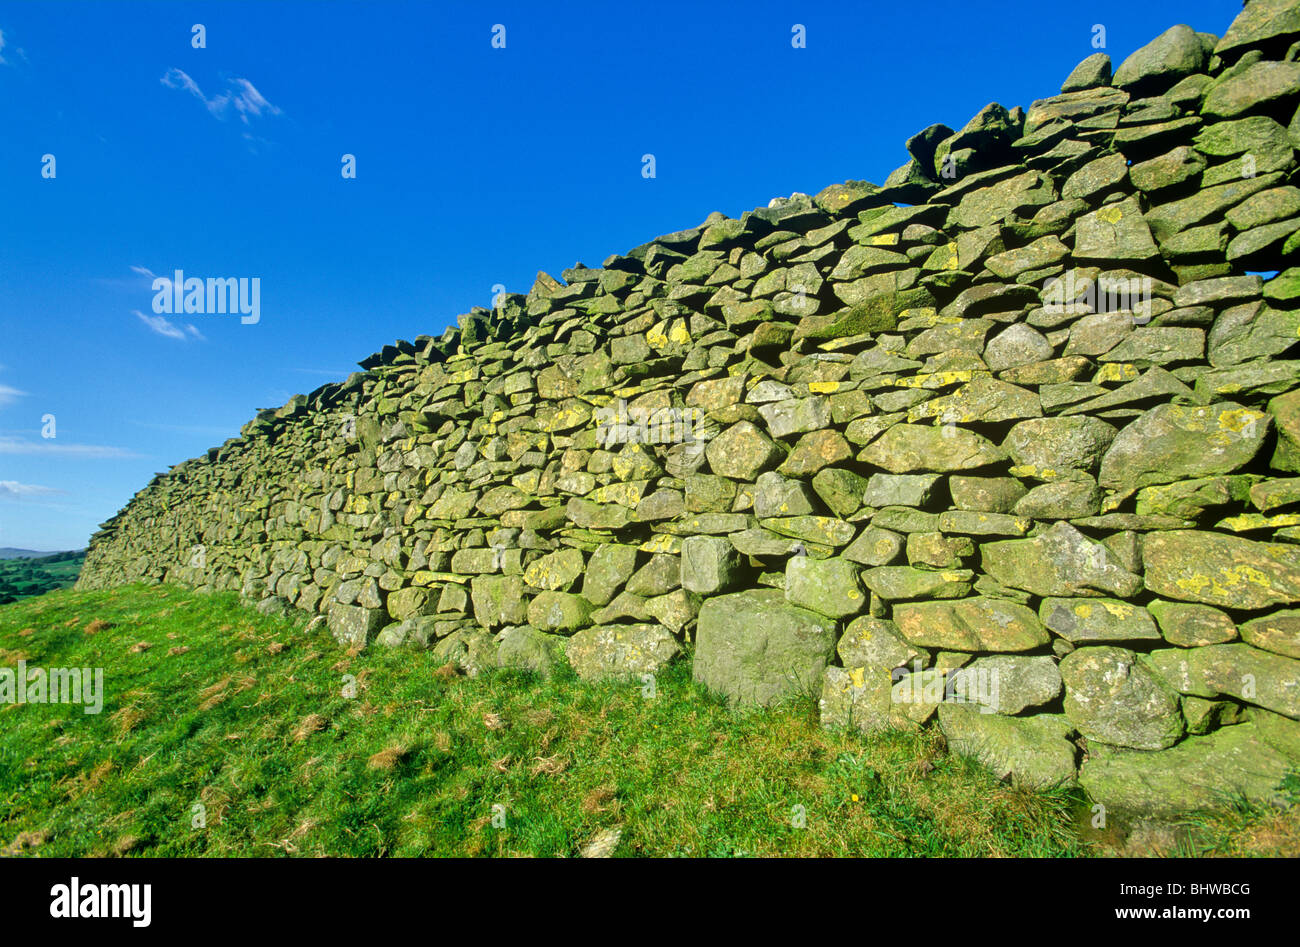 Dry stone wall in the English countryside, Yorkshire Dales National Park, Cumbria, England - Stock Image